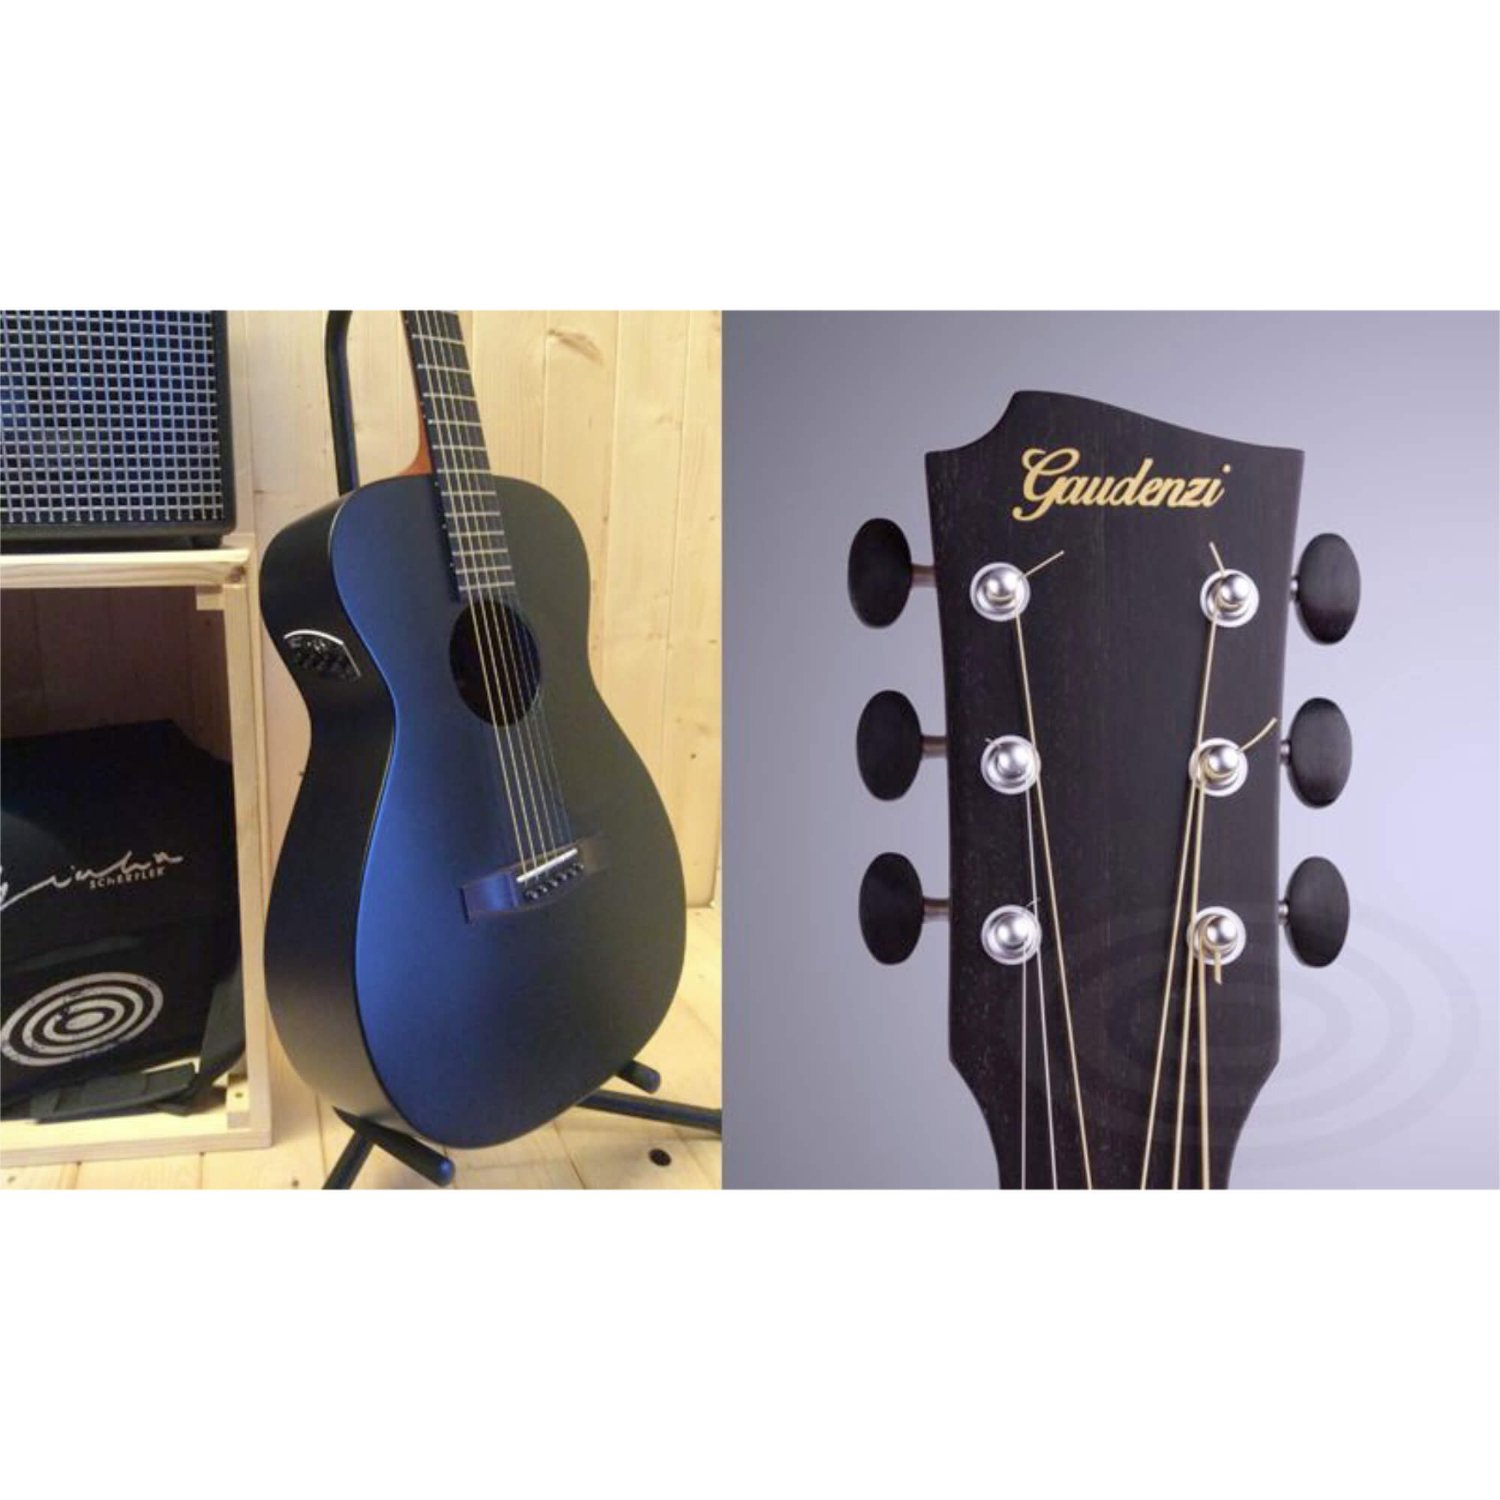 gaudenzi guitars